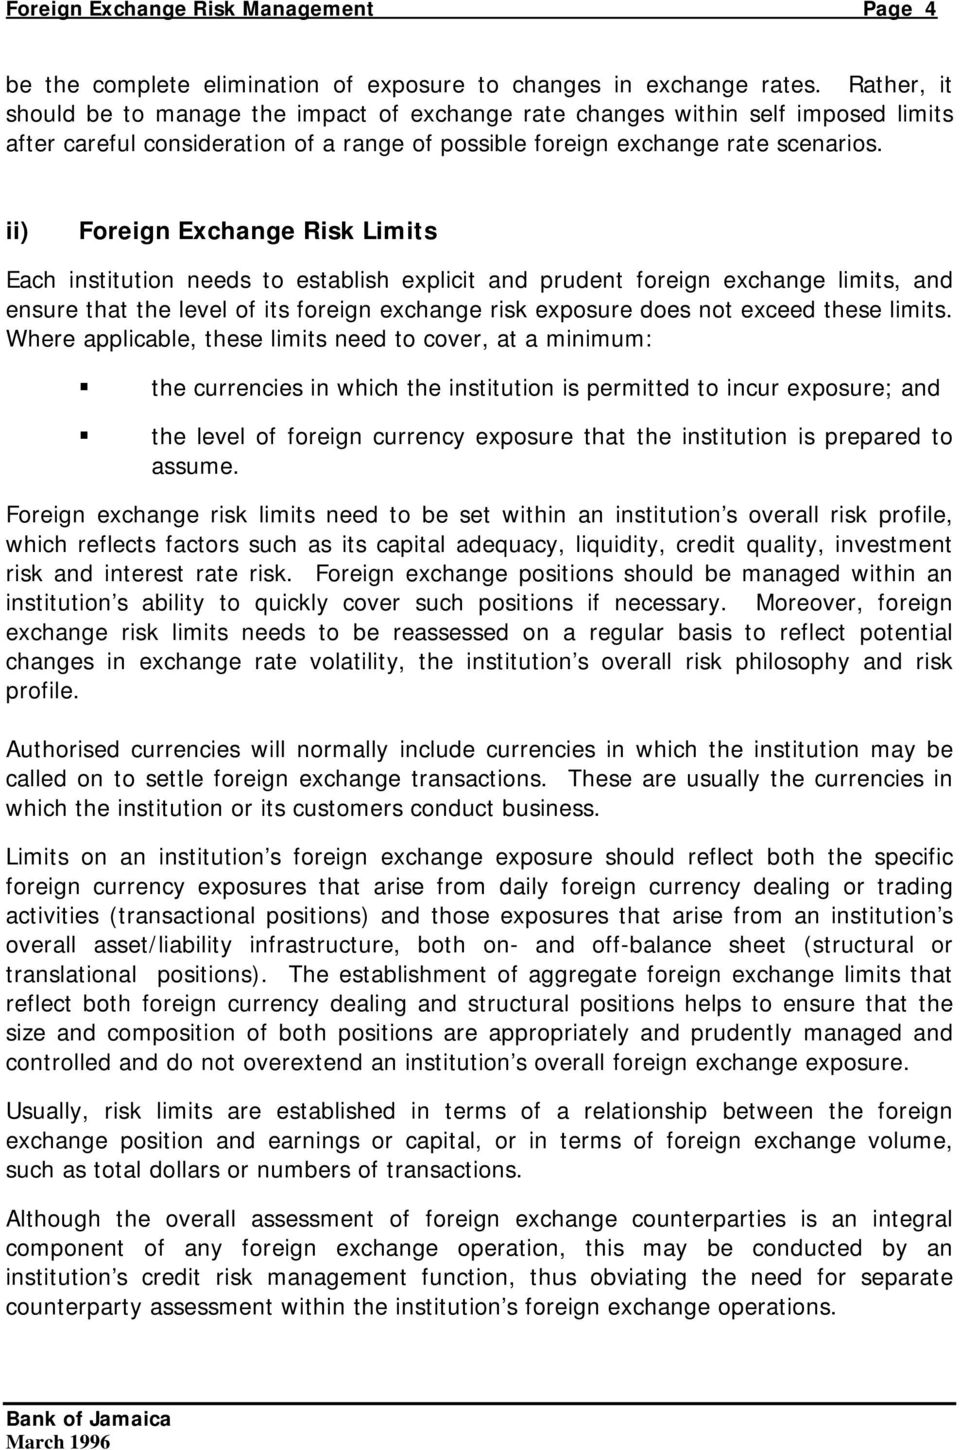 ii) Foreign Exchange Risk Limits Each institution needs to establish explicit and prudent foreign exchange limits, and ensure that the level of its foreign exchange risk exposure does not exceed